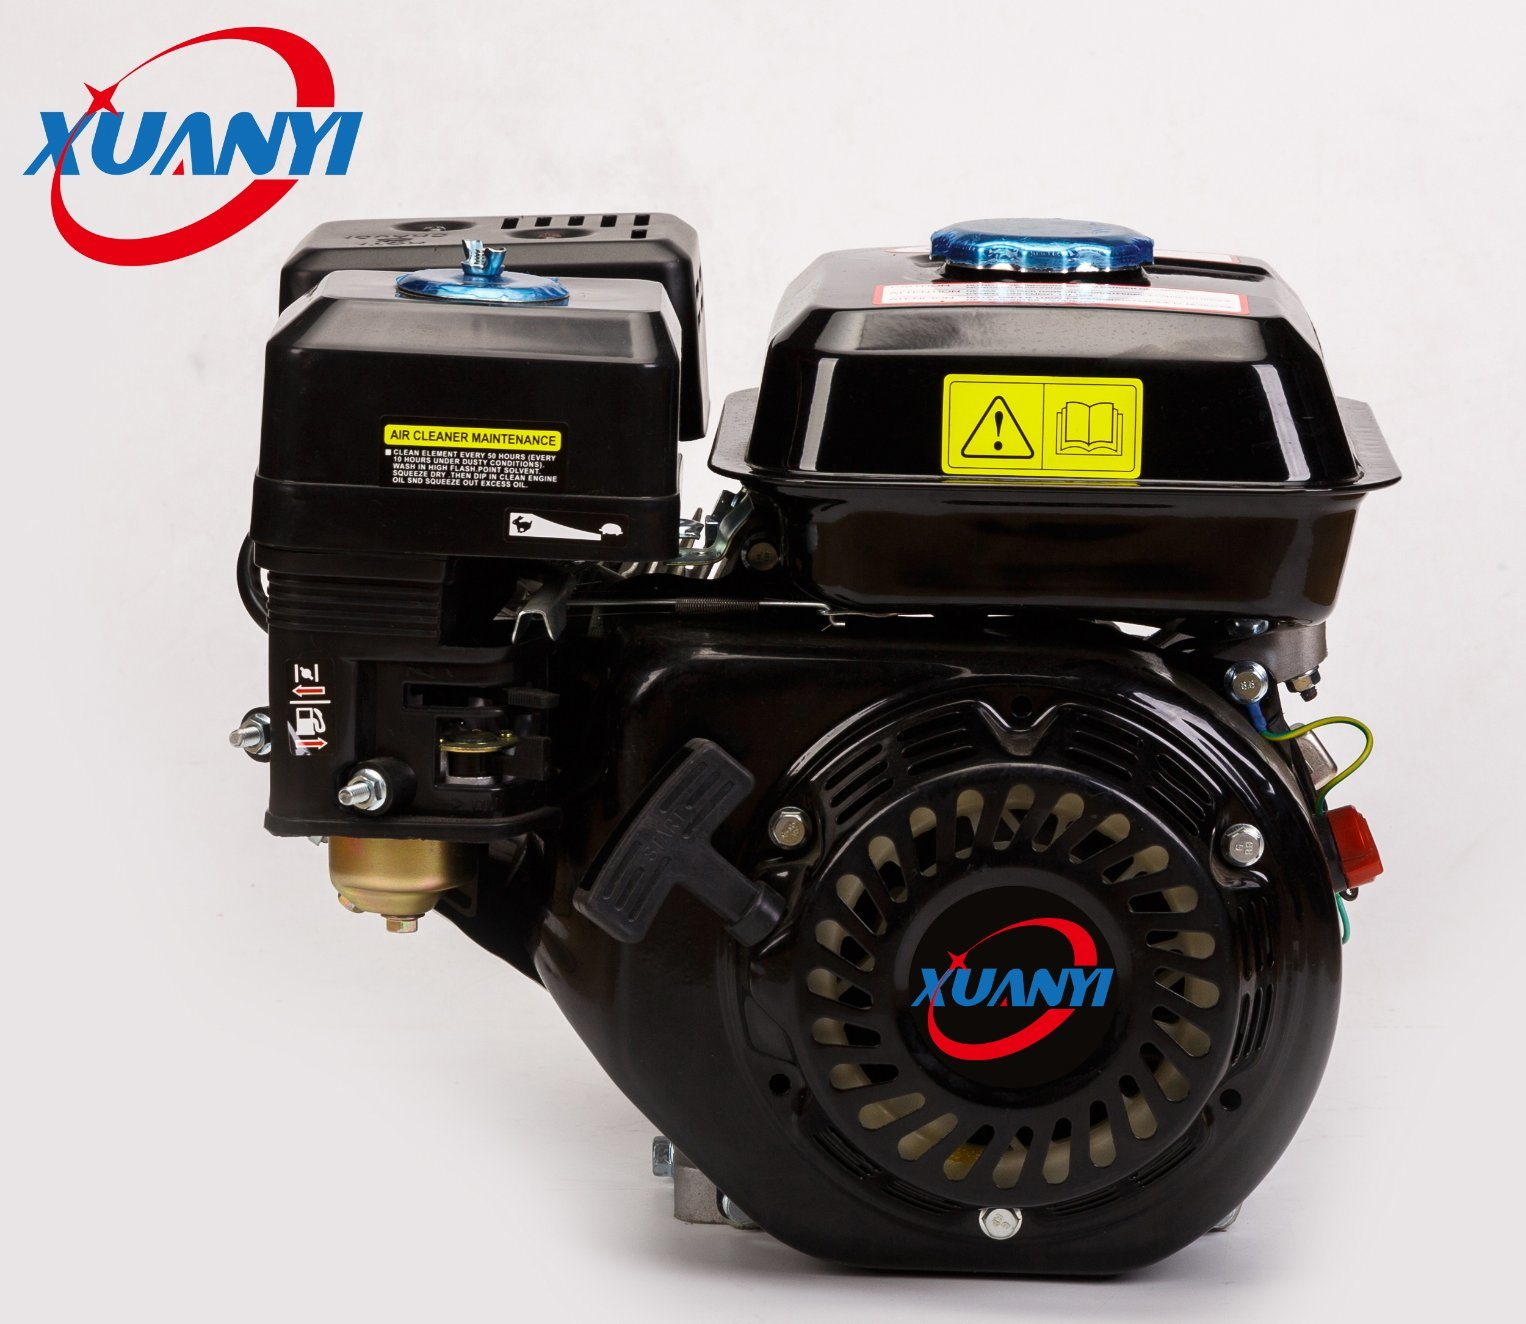 6.5HP (168F) 4 Stroke Air Cooled Petrol/Gasoline Engine